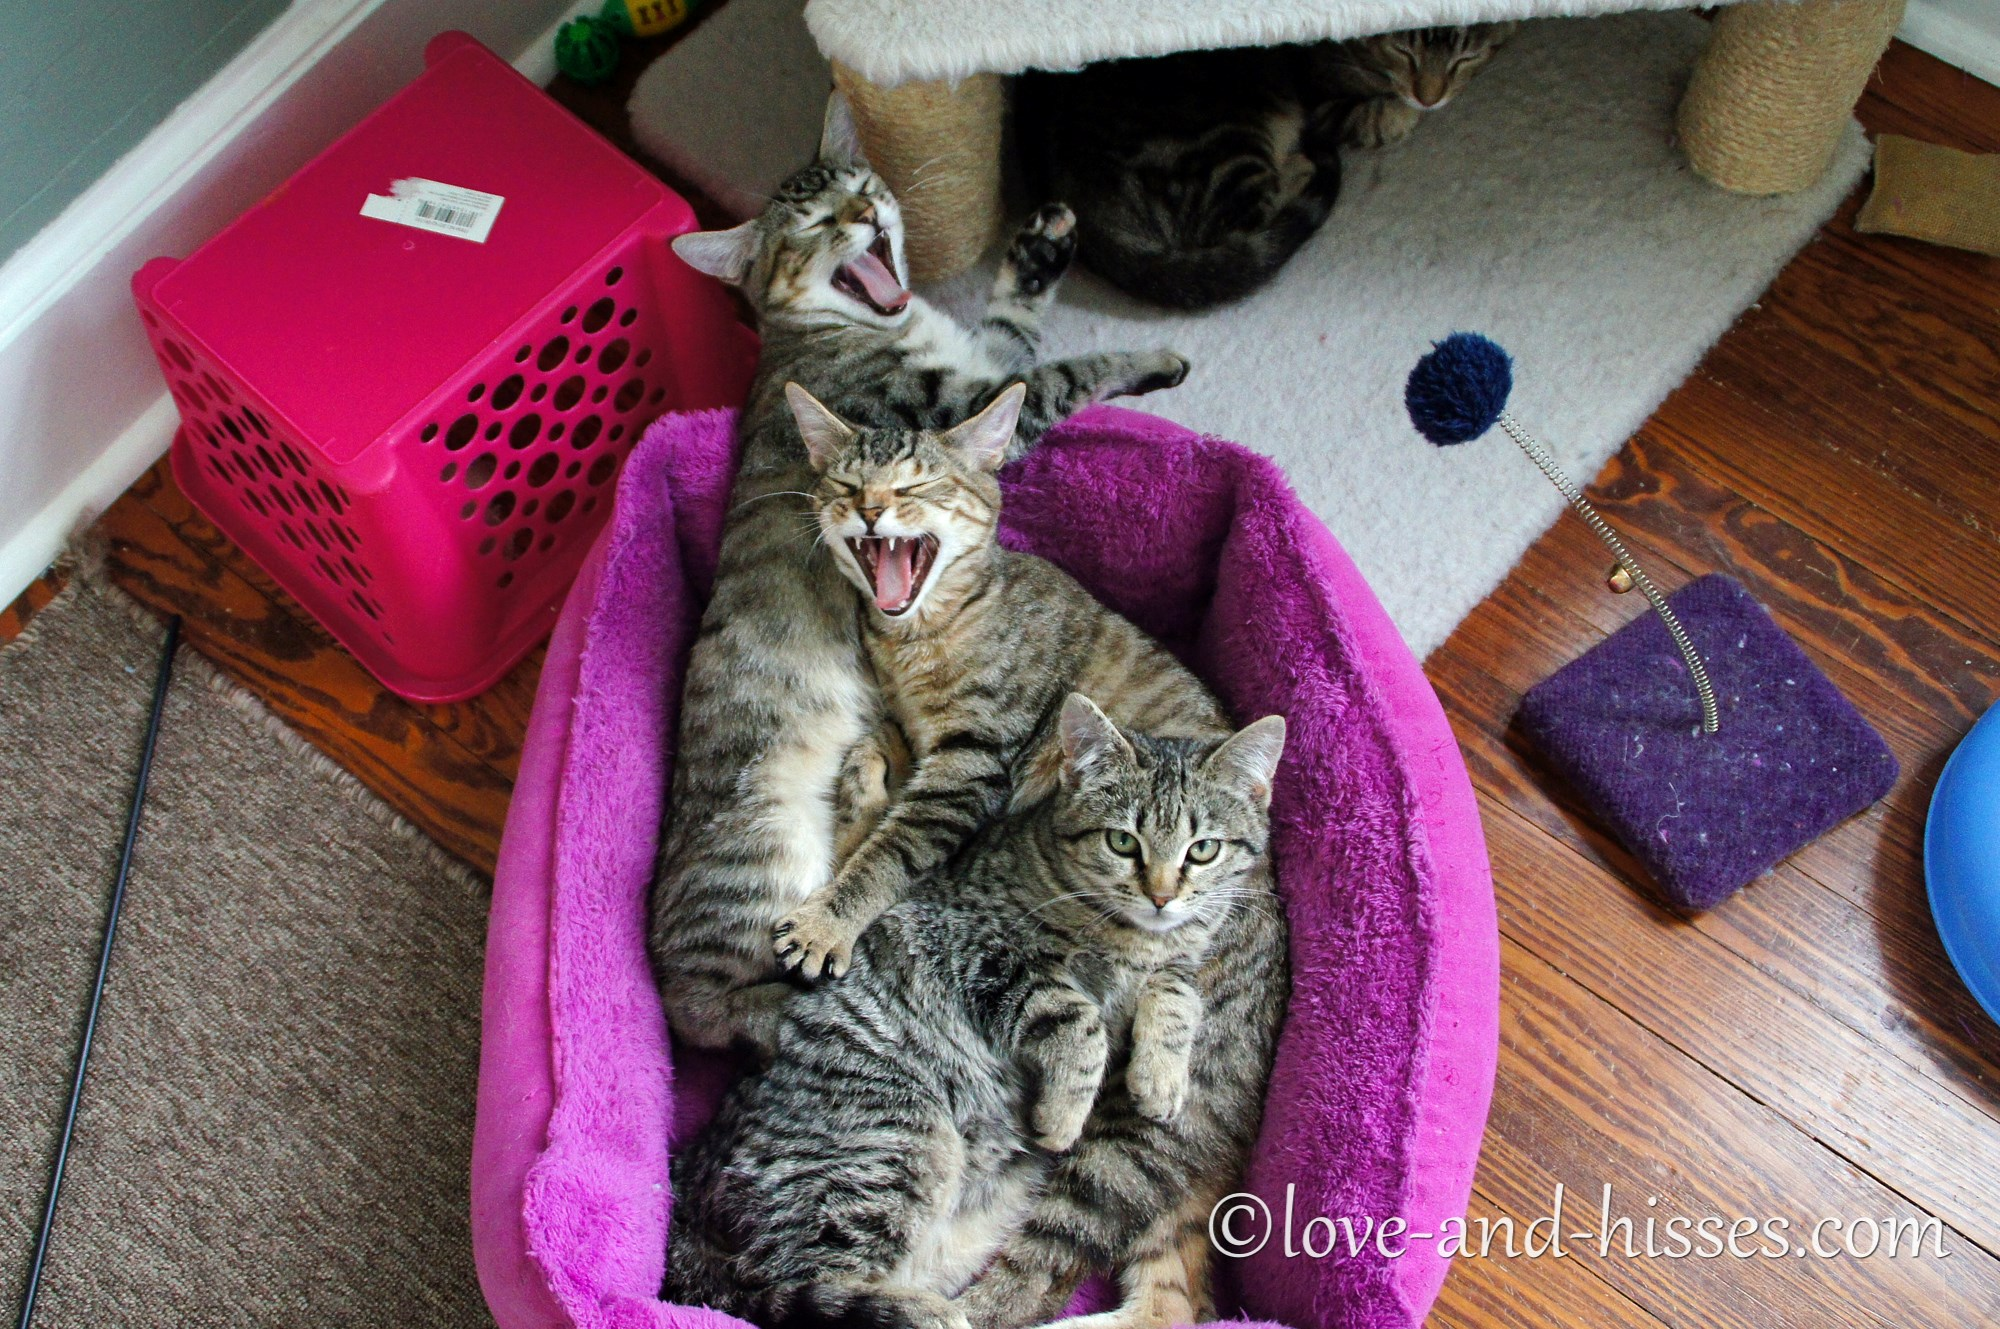 Three kittens in a cat bed, two yawning